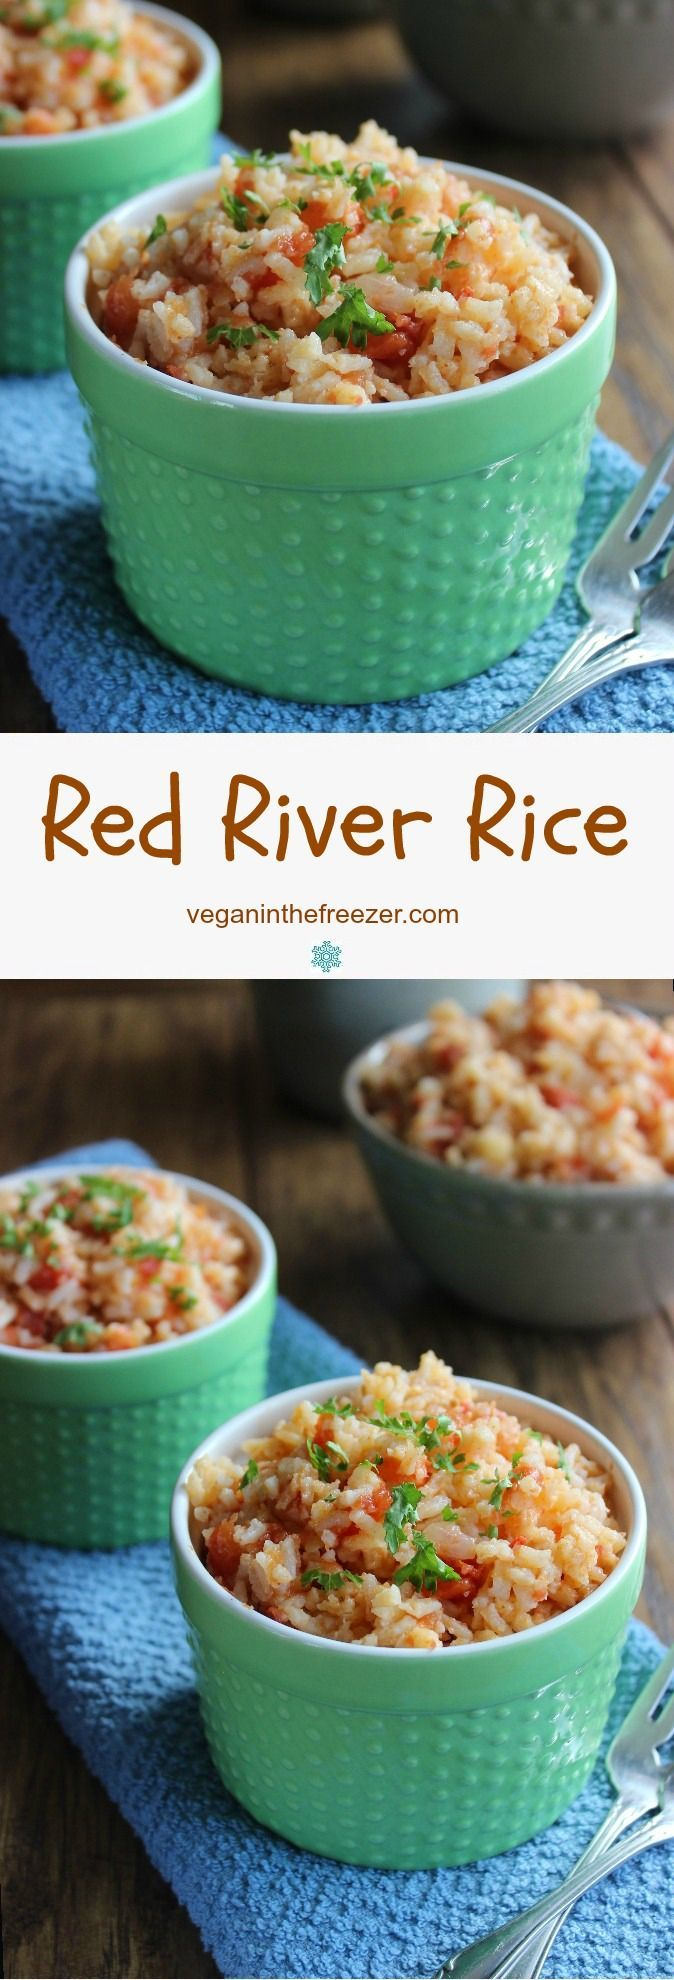 11 Best Red River Cereal Images On Pinterest Cereal Bread Red